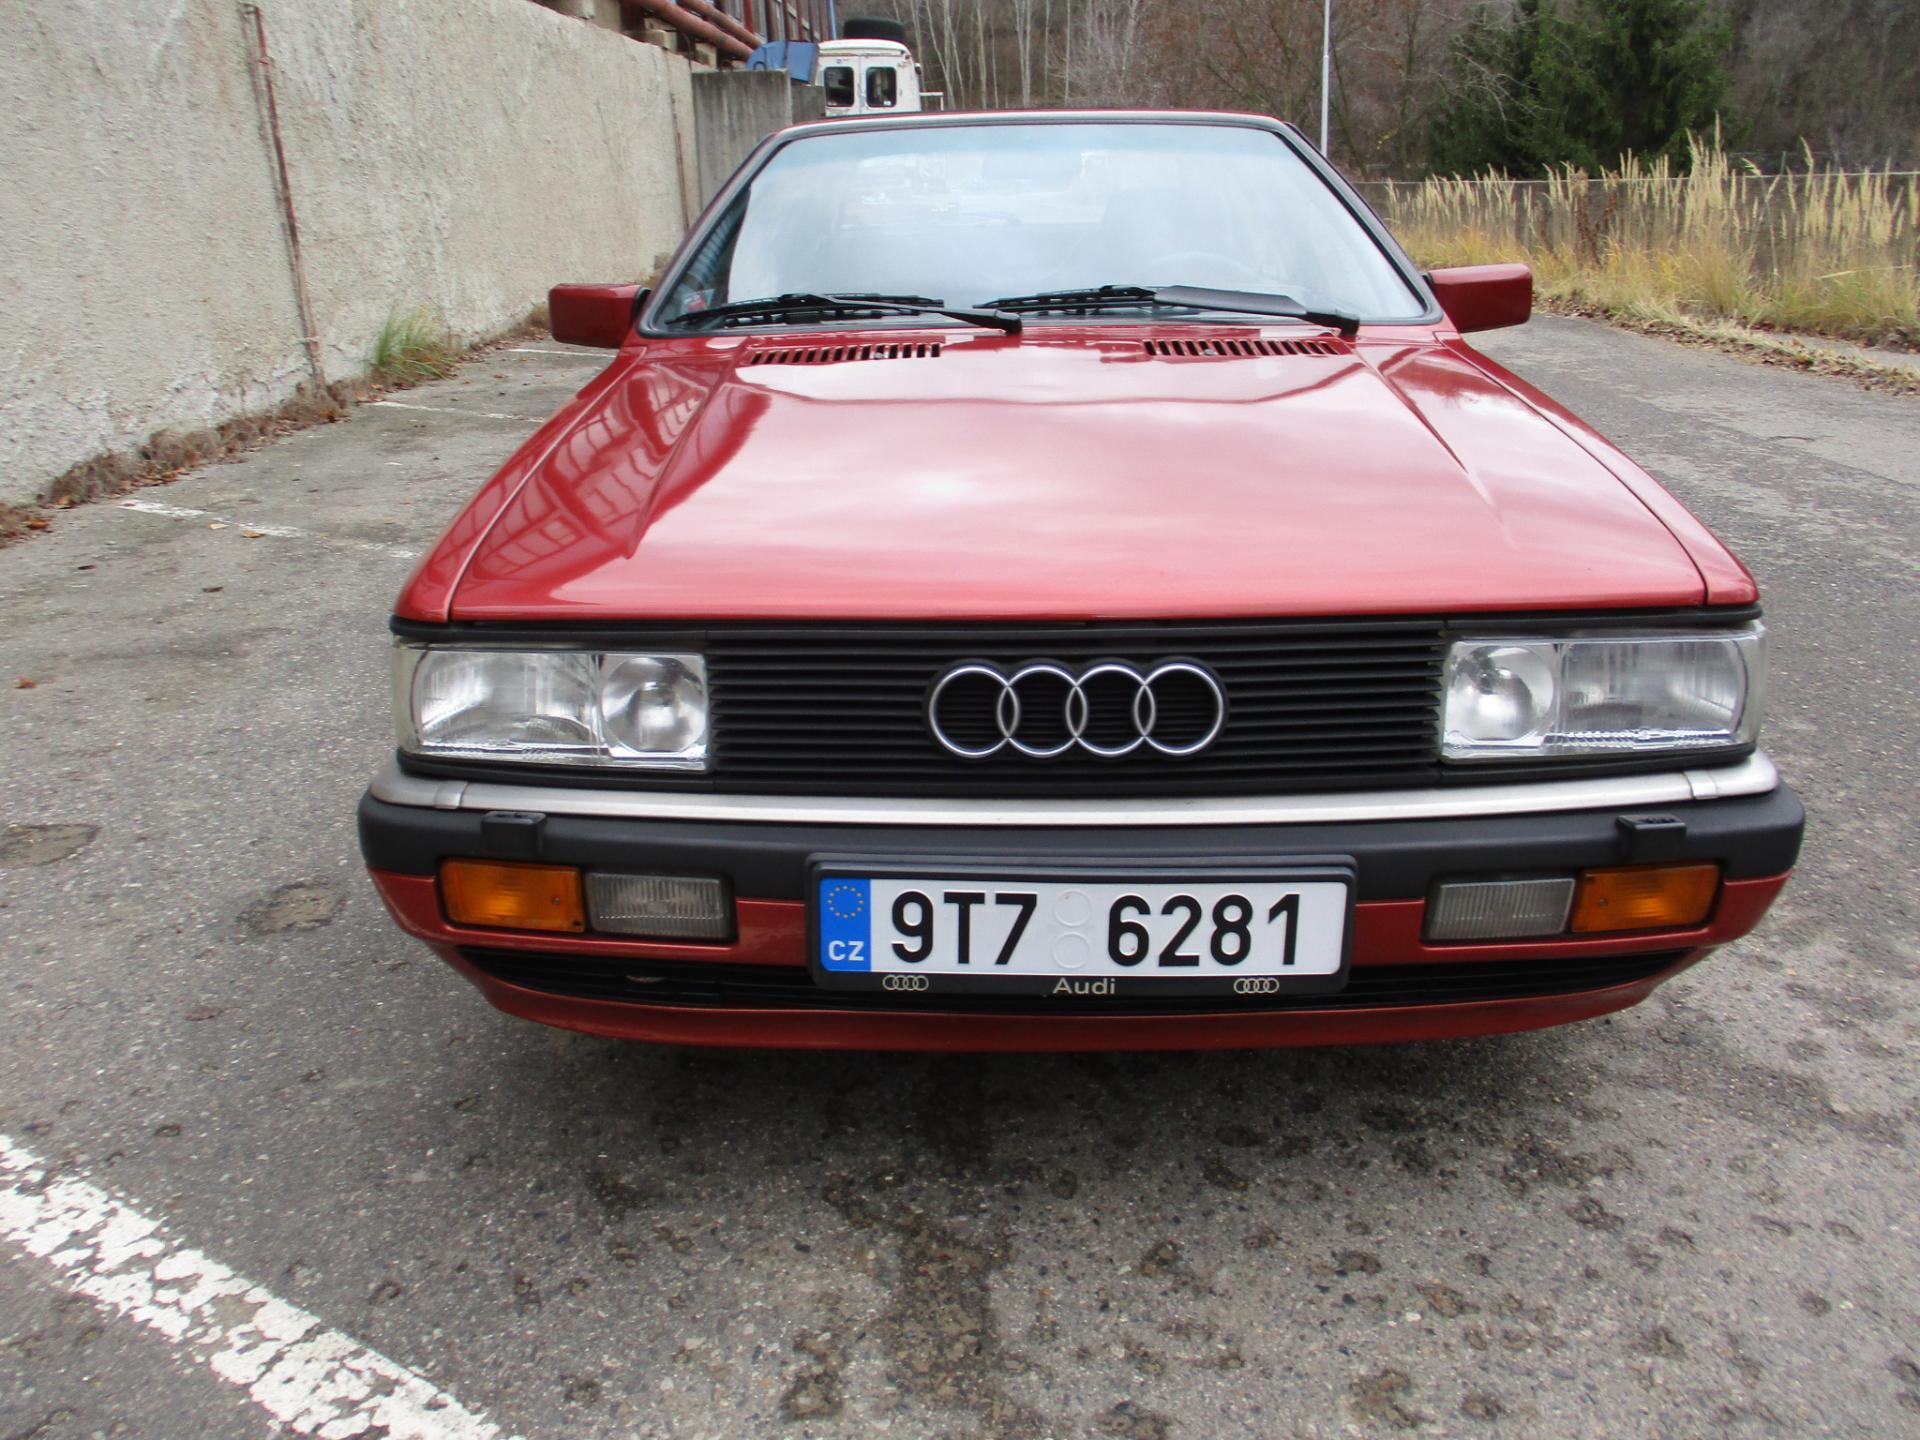 Audi Coupe GT 1985 classiccalforsale